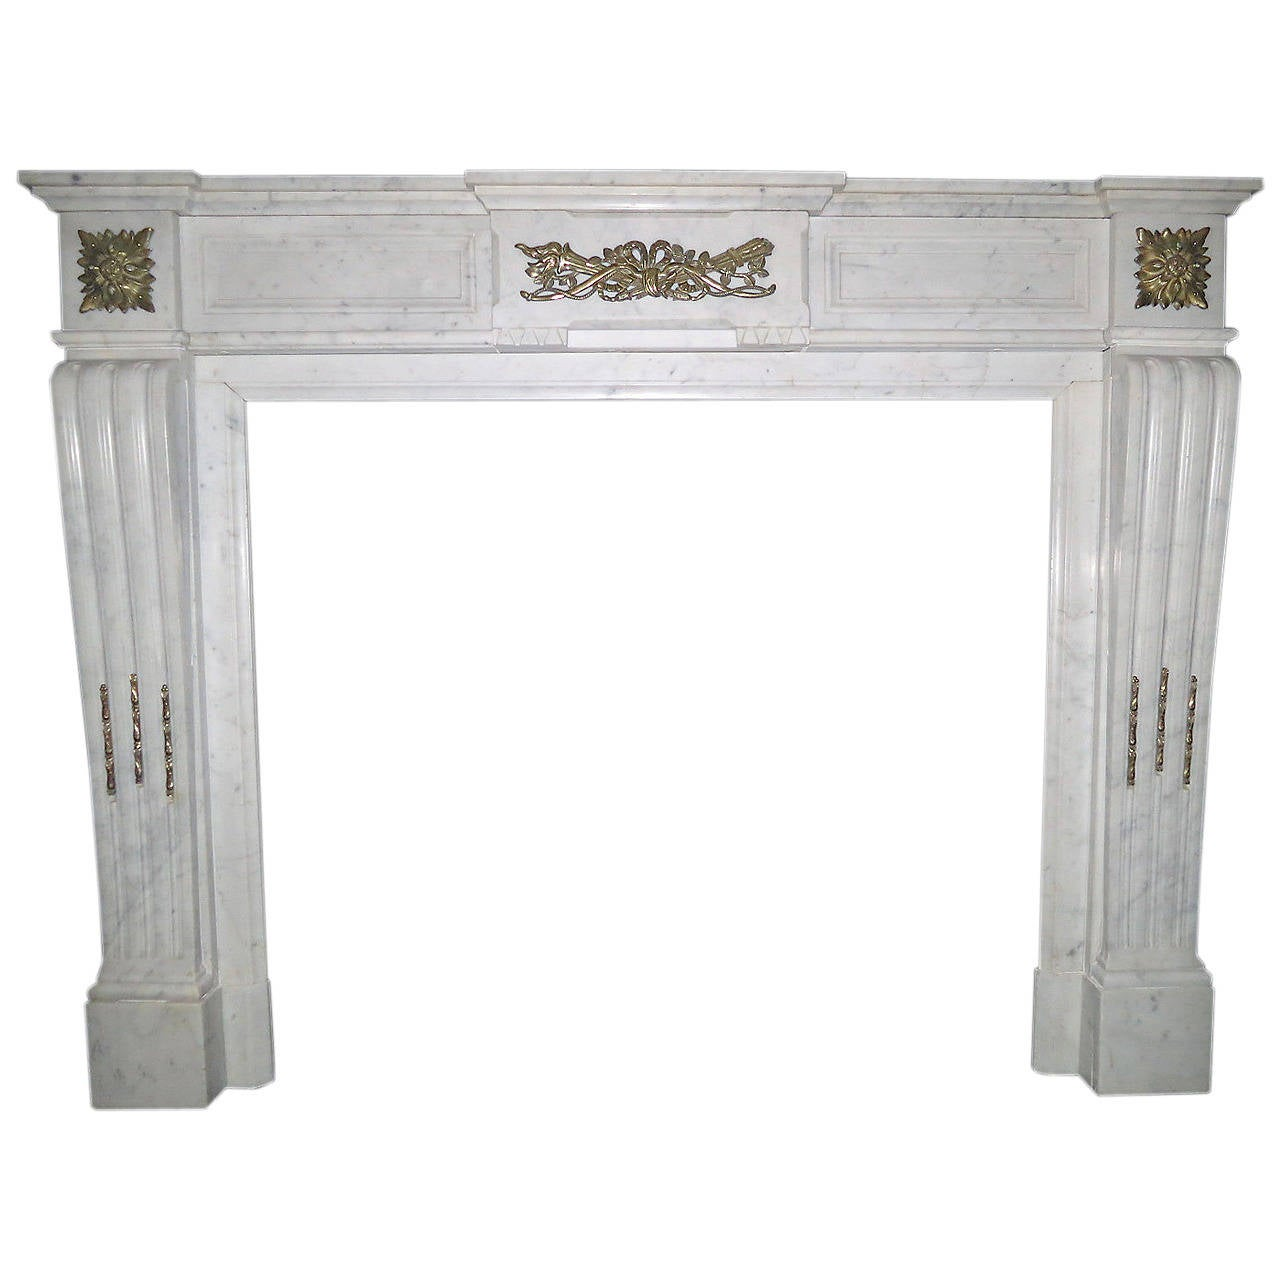 Antique French Louis Xvi Style Marble With Ormolu Fireplace Mantel At 1stdibs